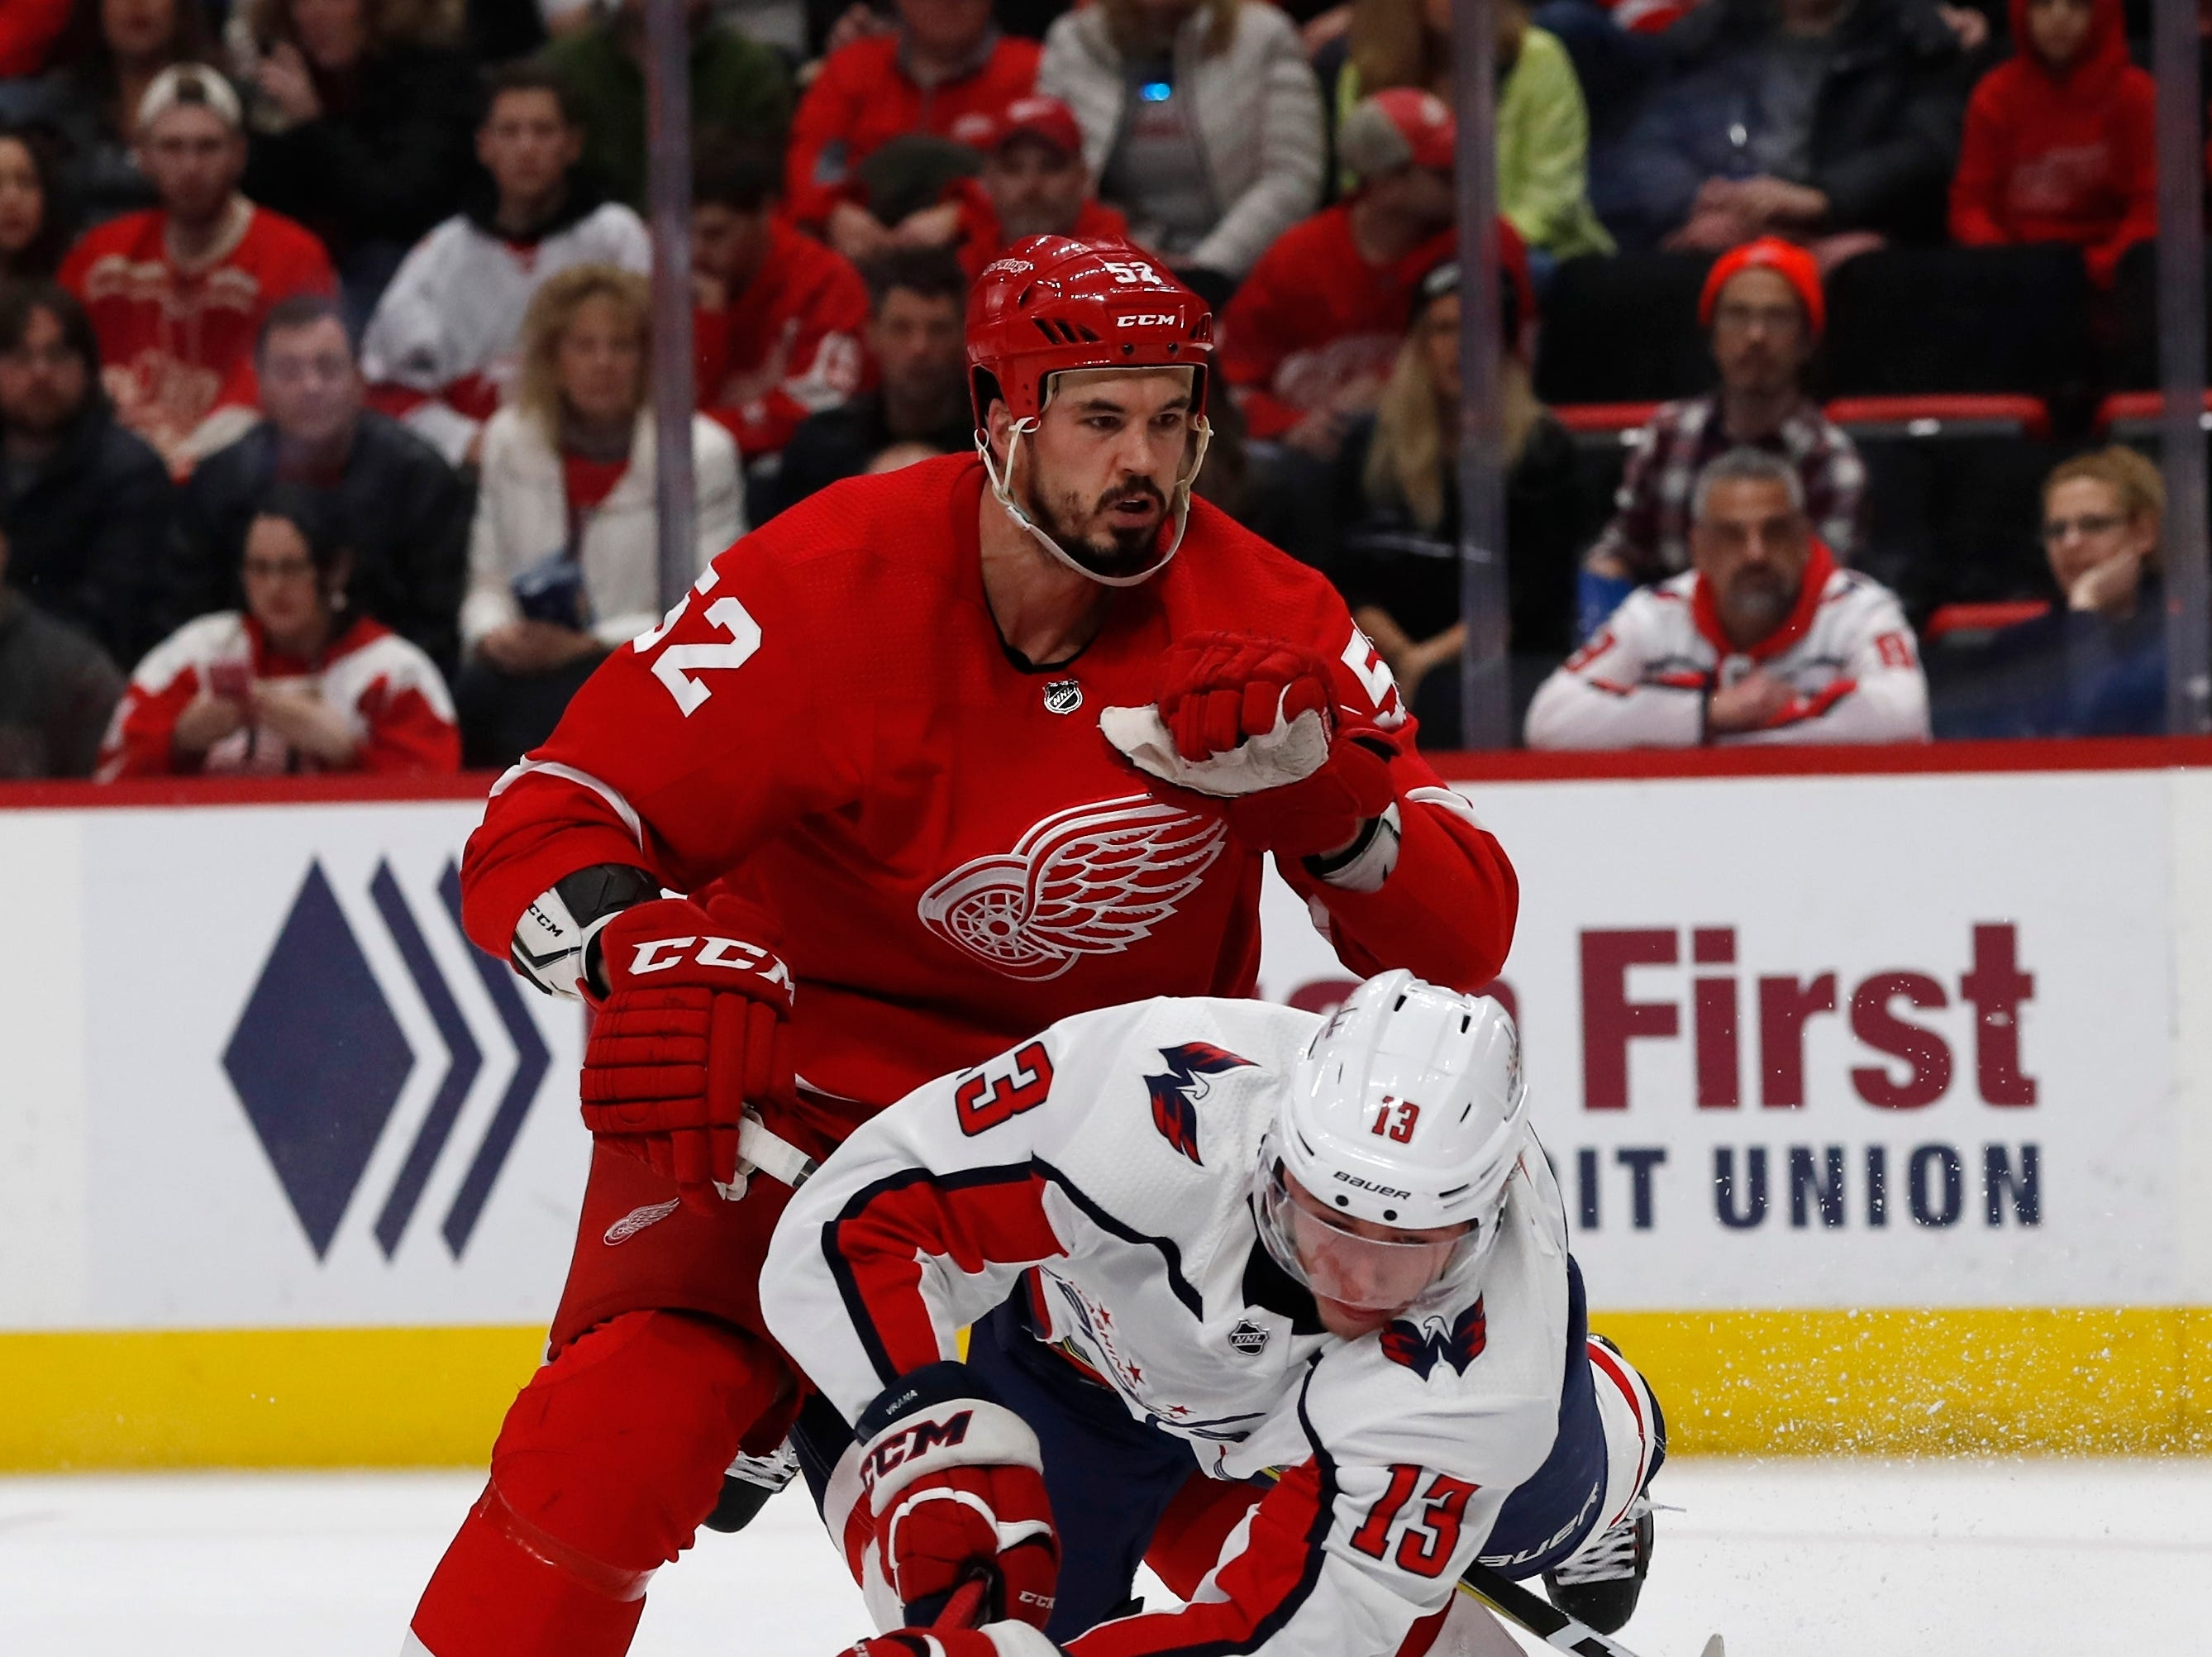 Washington Capitals left wing Jakub Vrana (13) is tripped by Detroit Red Wings defenseman Jonathan Ericsson (52) as he reaches for the puck during the second period.